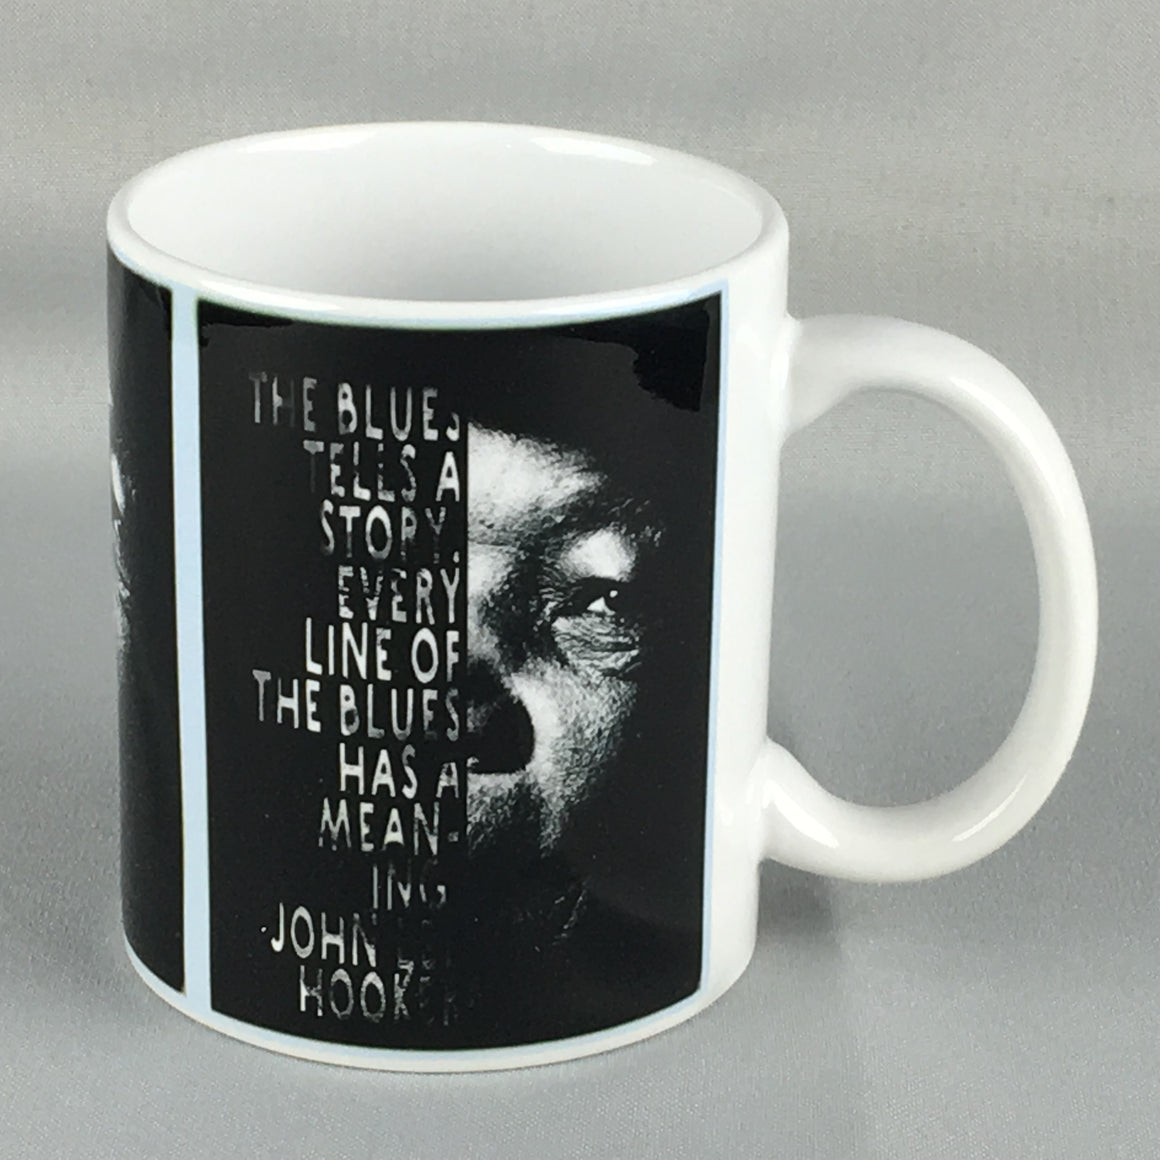 John Lee Hooker The Blues Tells a Story Coffee Mug - Beautiful, Unique Gift!